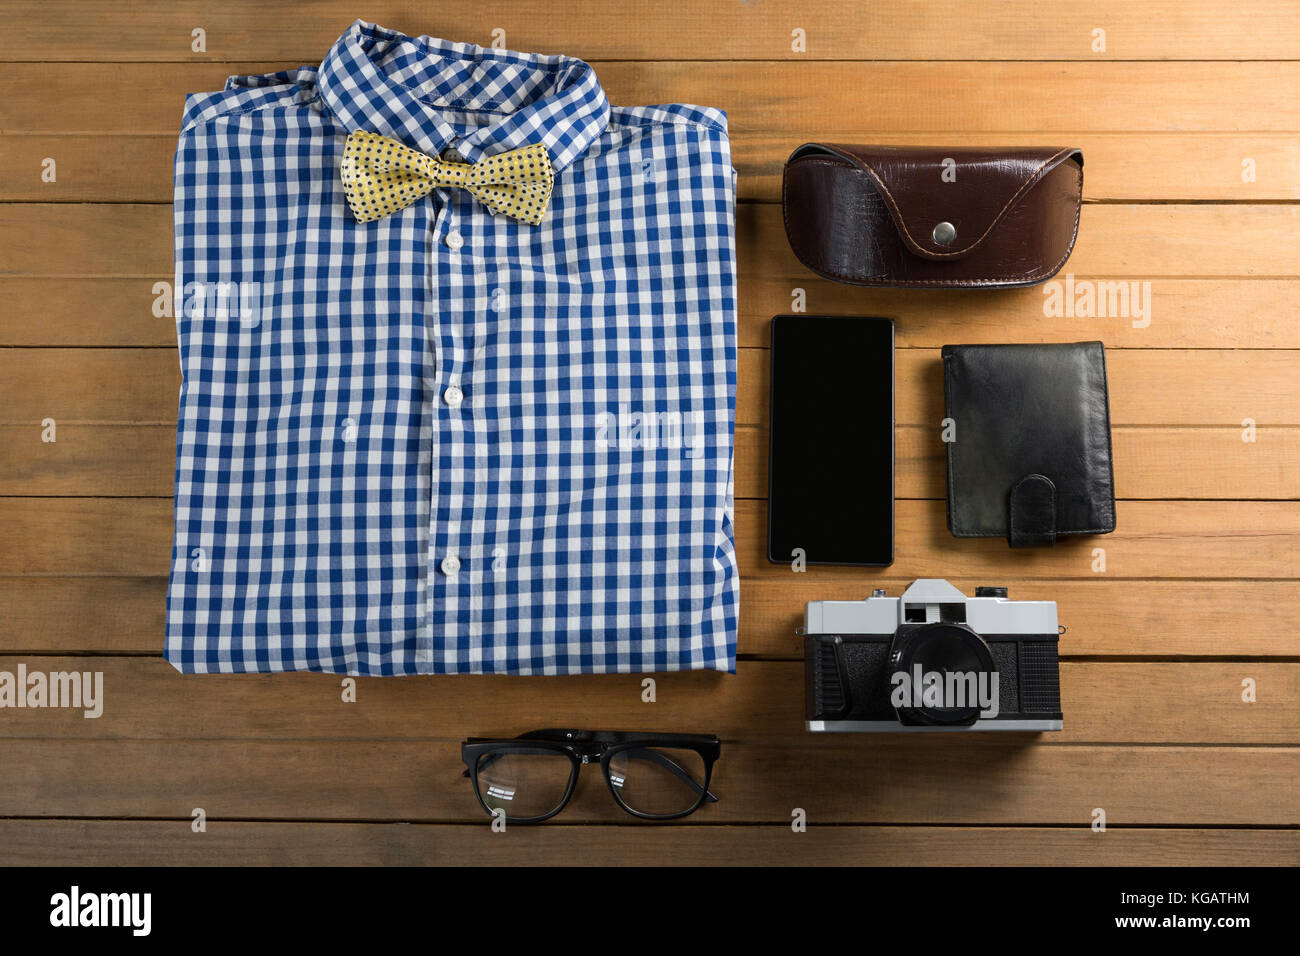 Folded shirt, spectacle, camera, wallet, and mobile phone arranged on wooden plank - Stock Image